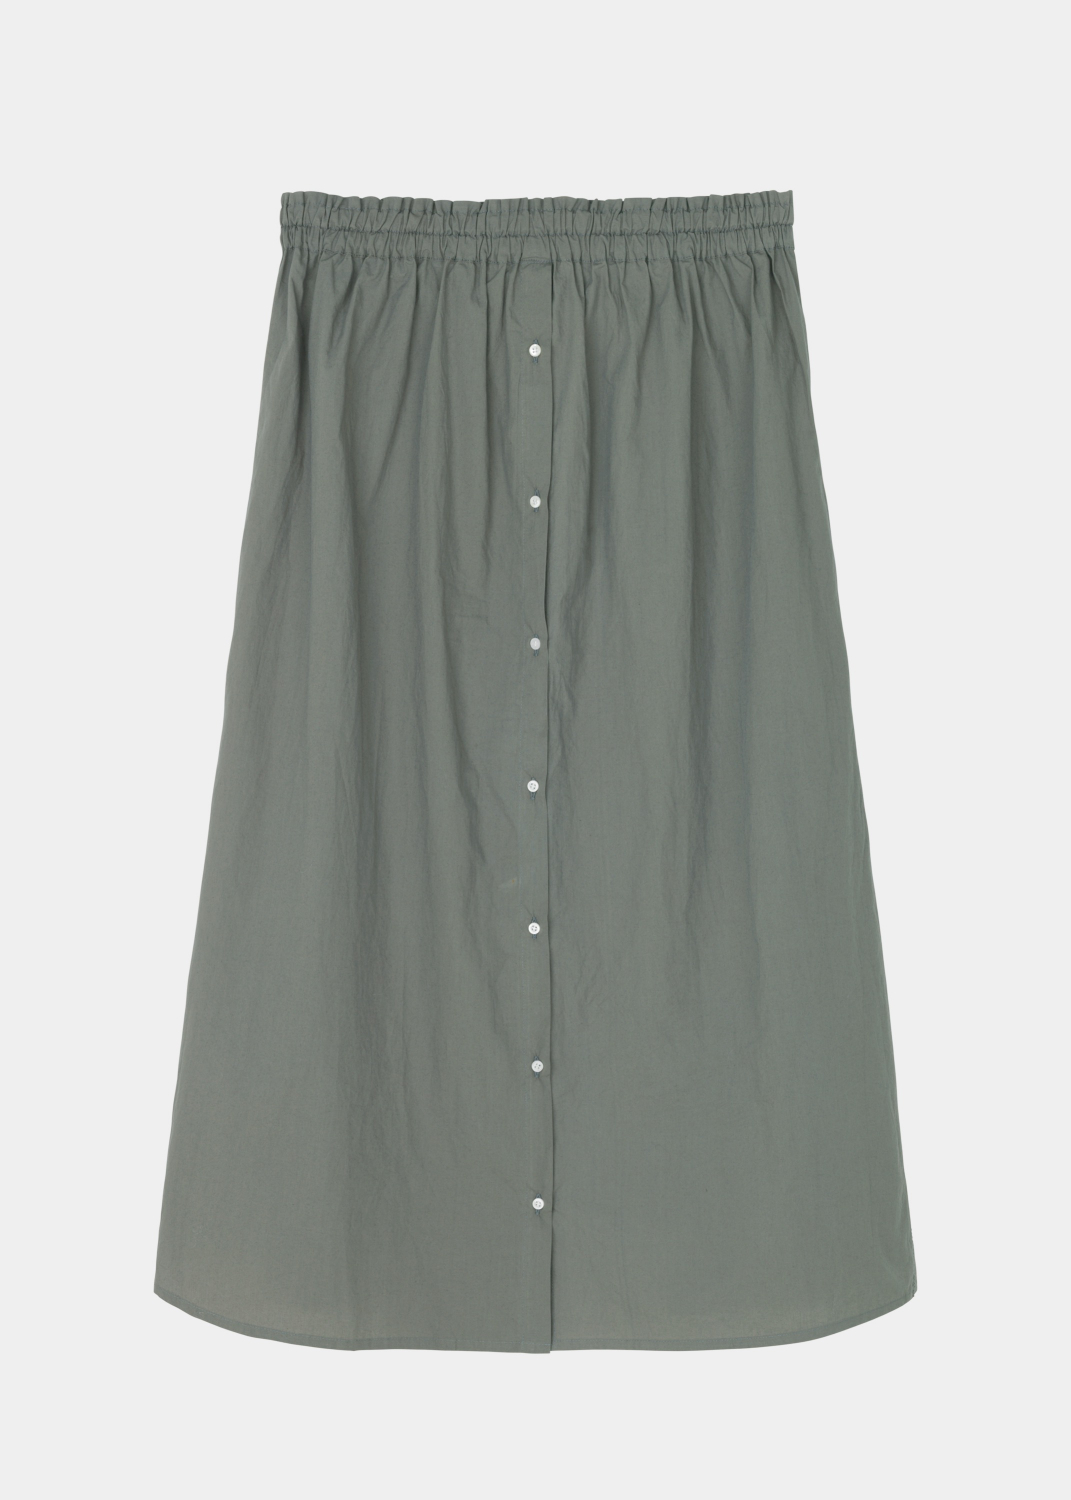 The Circle Collection - Circle Dorthe Skirt